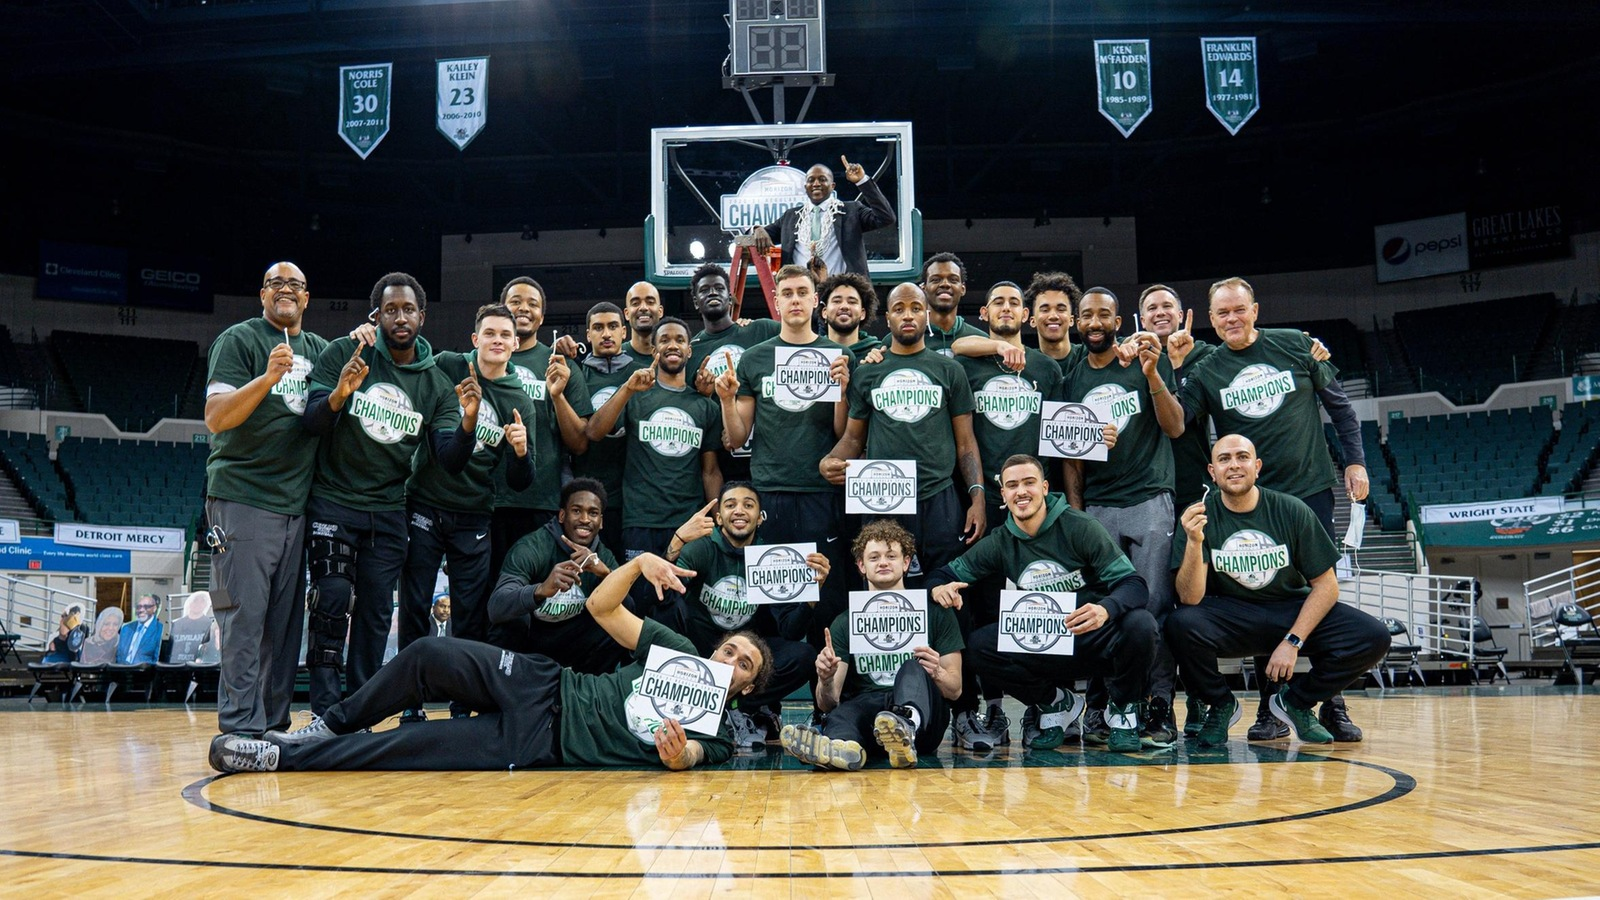 Cleveland State Snags No. 1 Seed in 2021 #HLMBB Tournament